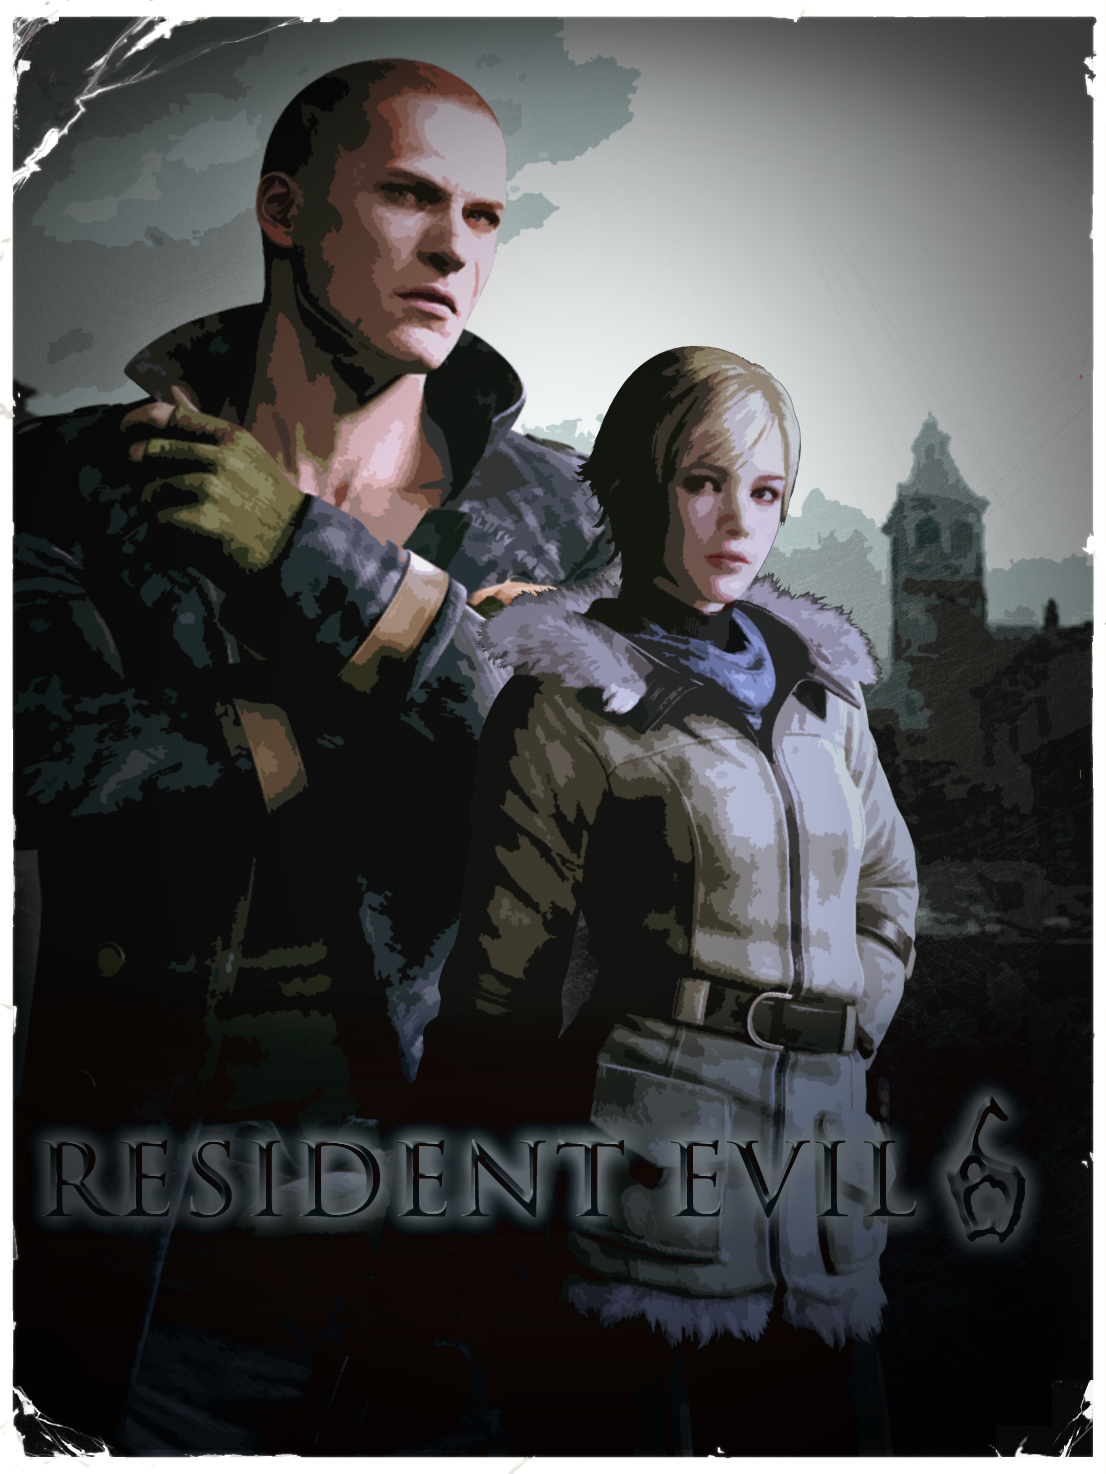 Pin by Alice Flores on Resident Evil Resident evil anime